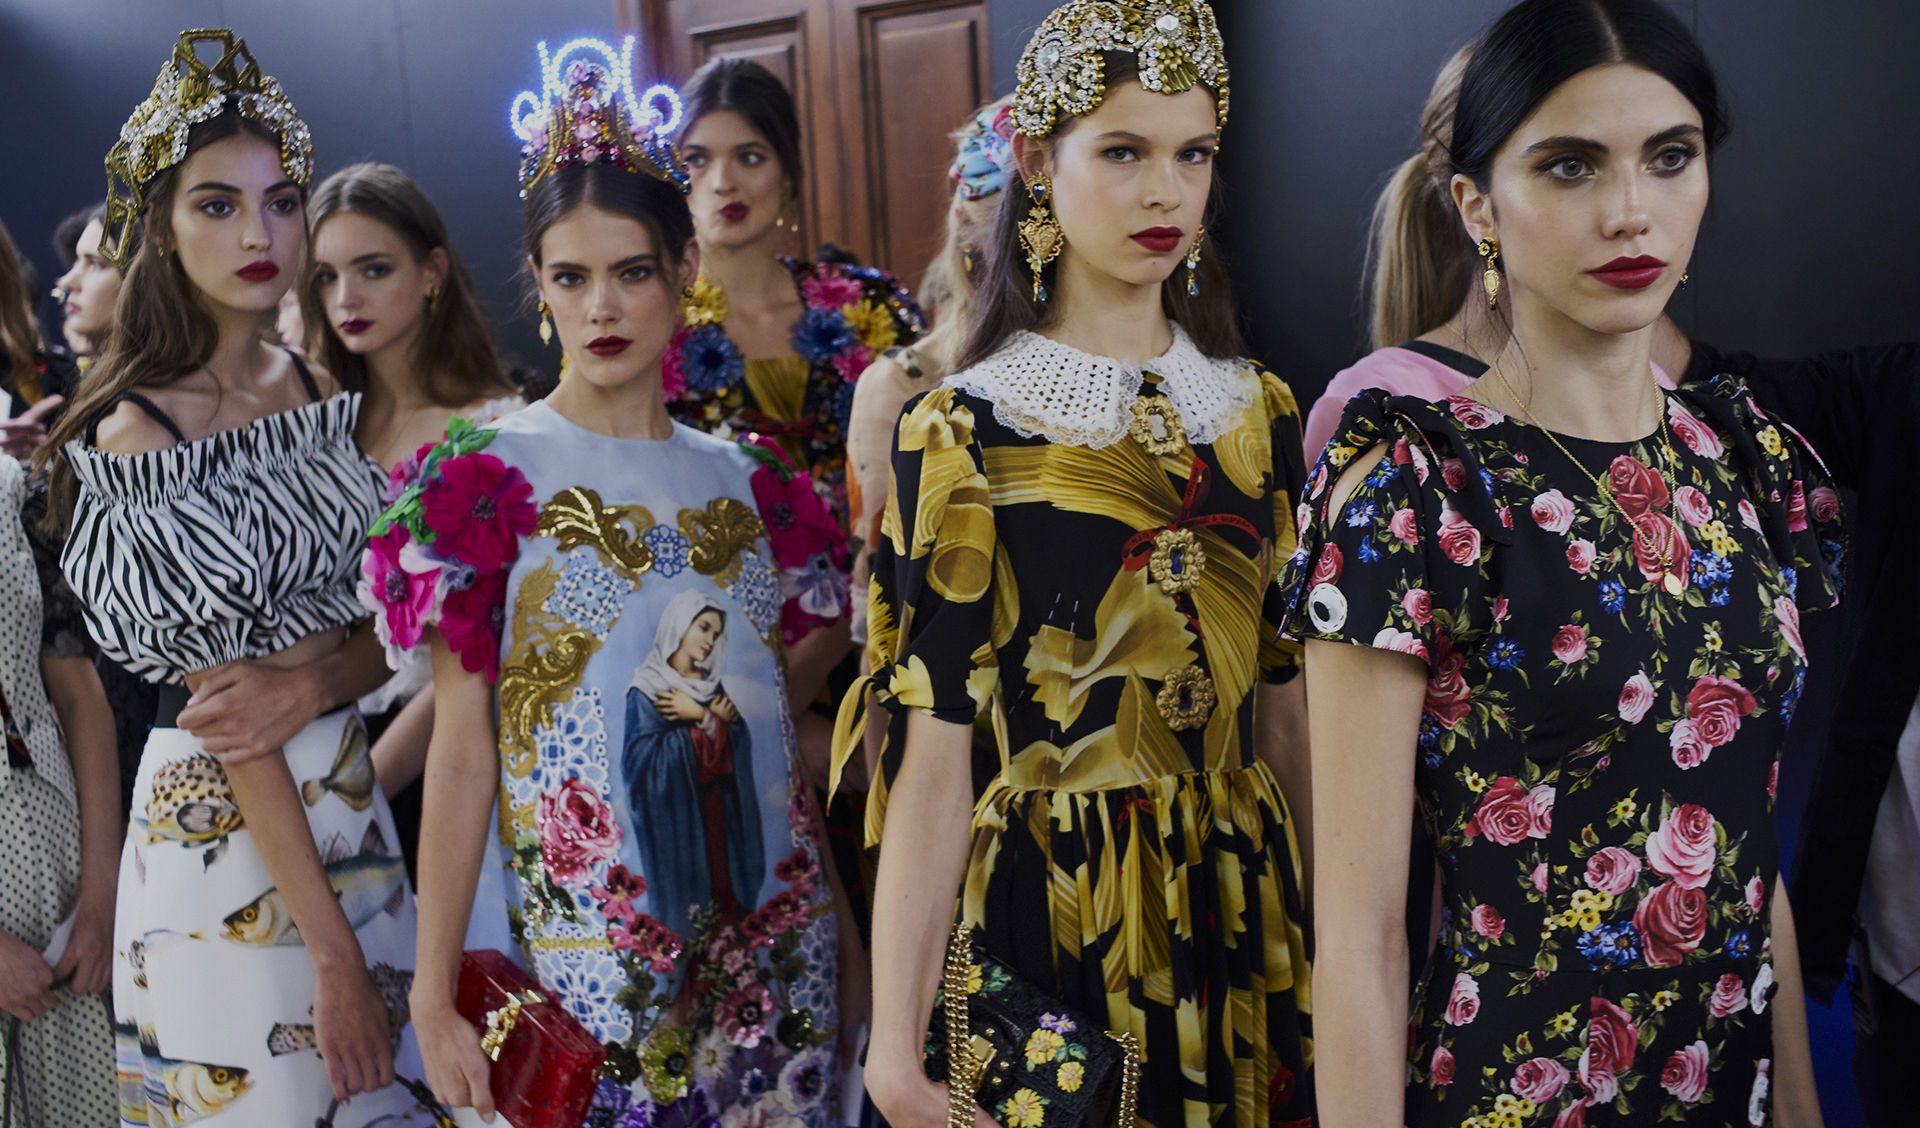 DOLCE & GABBANA SPRING 2017 RTW COLLECTION